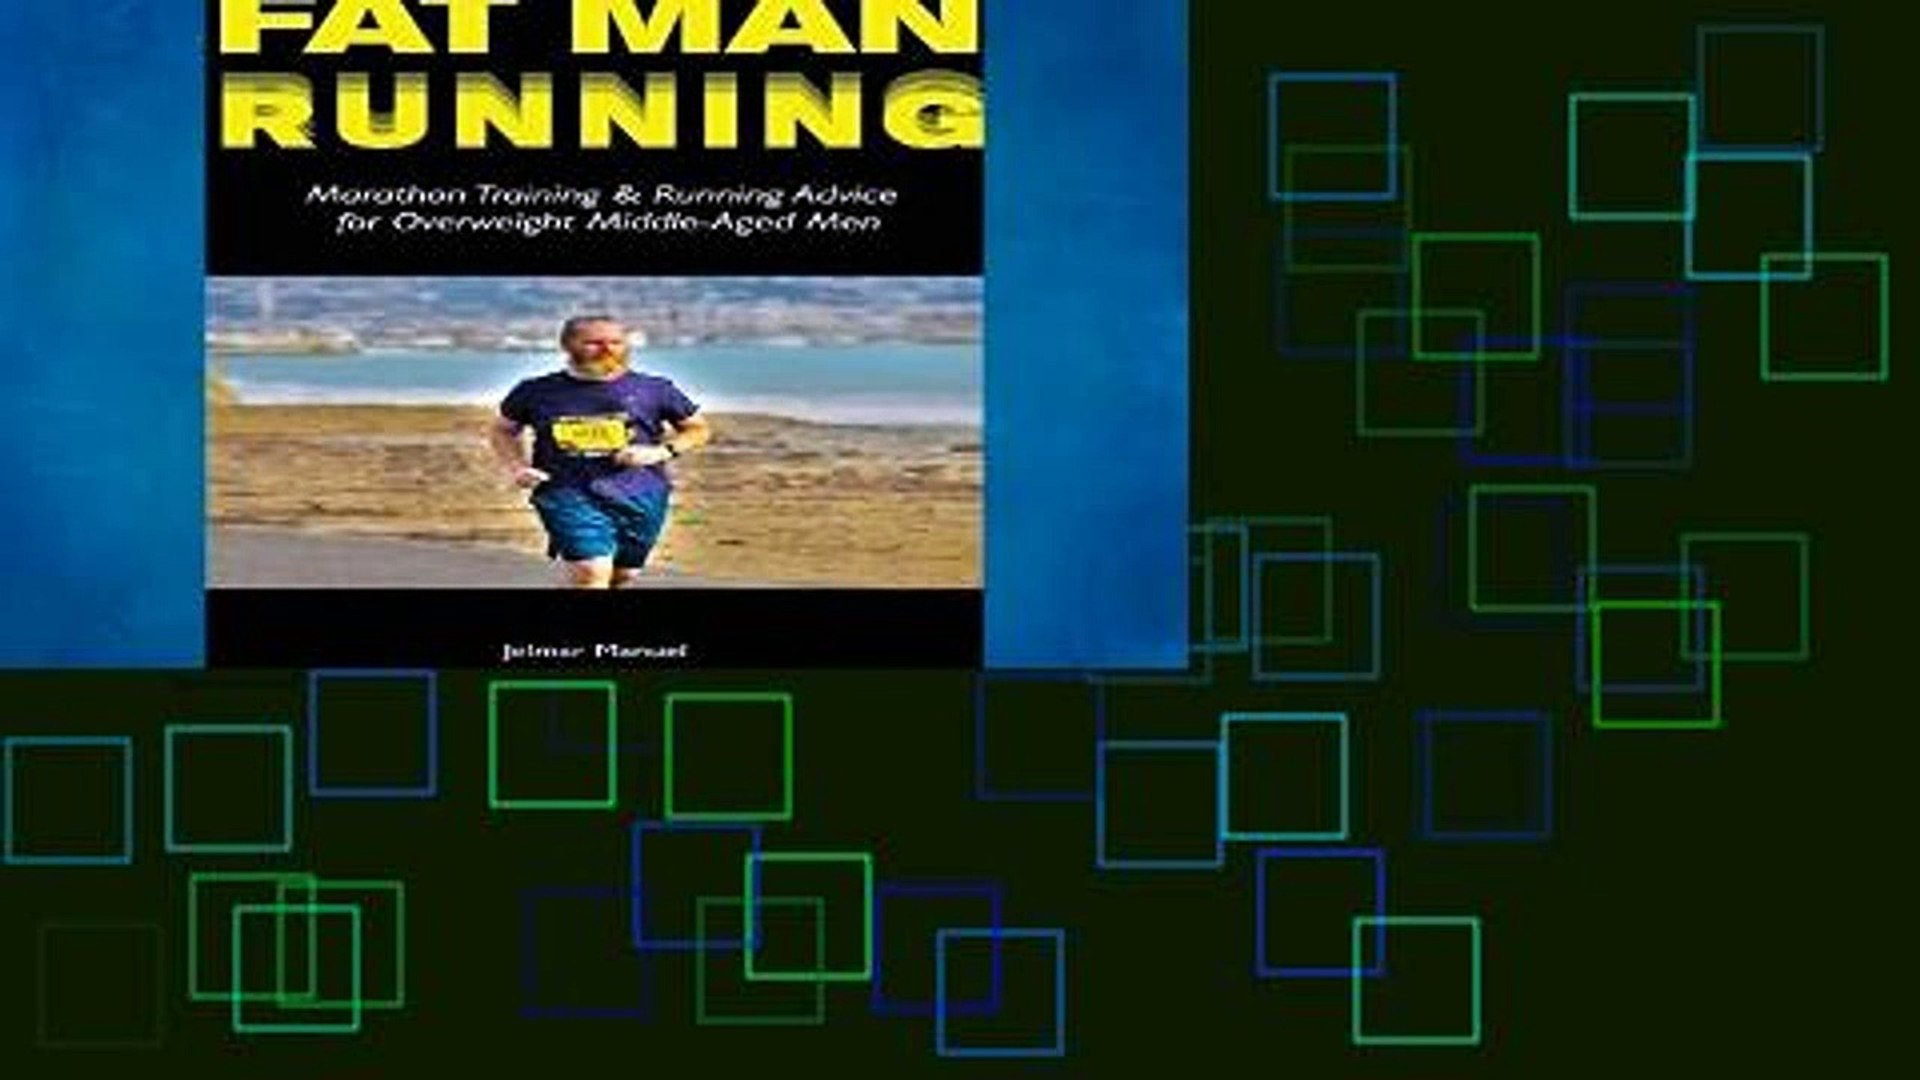 new E-Book Fat Man Running: Marathon Training   Running Advice for Overweight Middle-Aged Men any